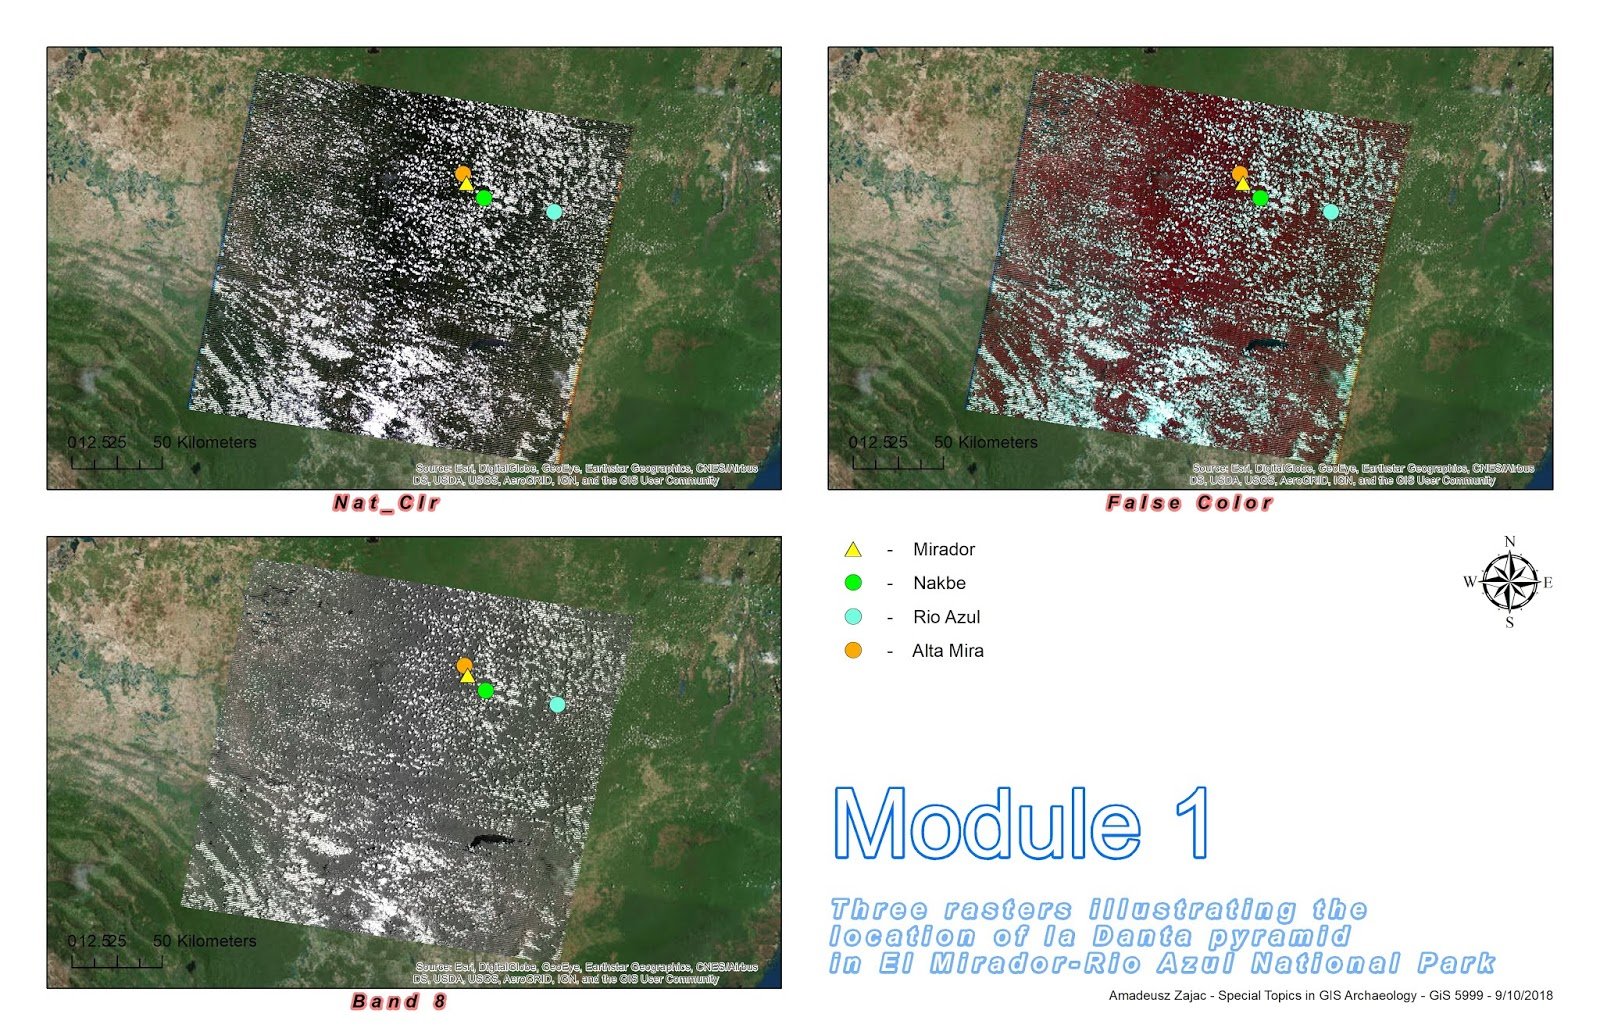 gis 5990 special topics in gis archaeology module 1